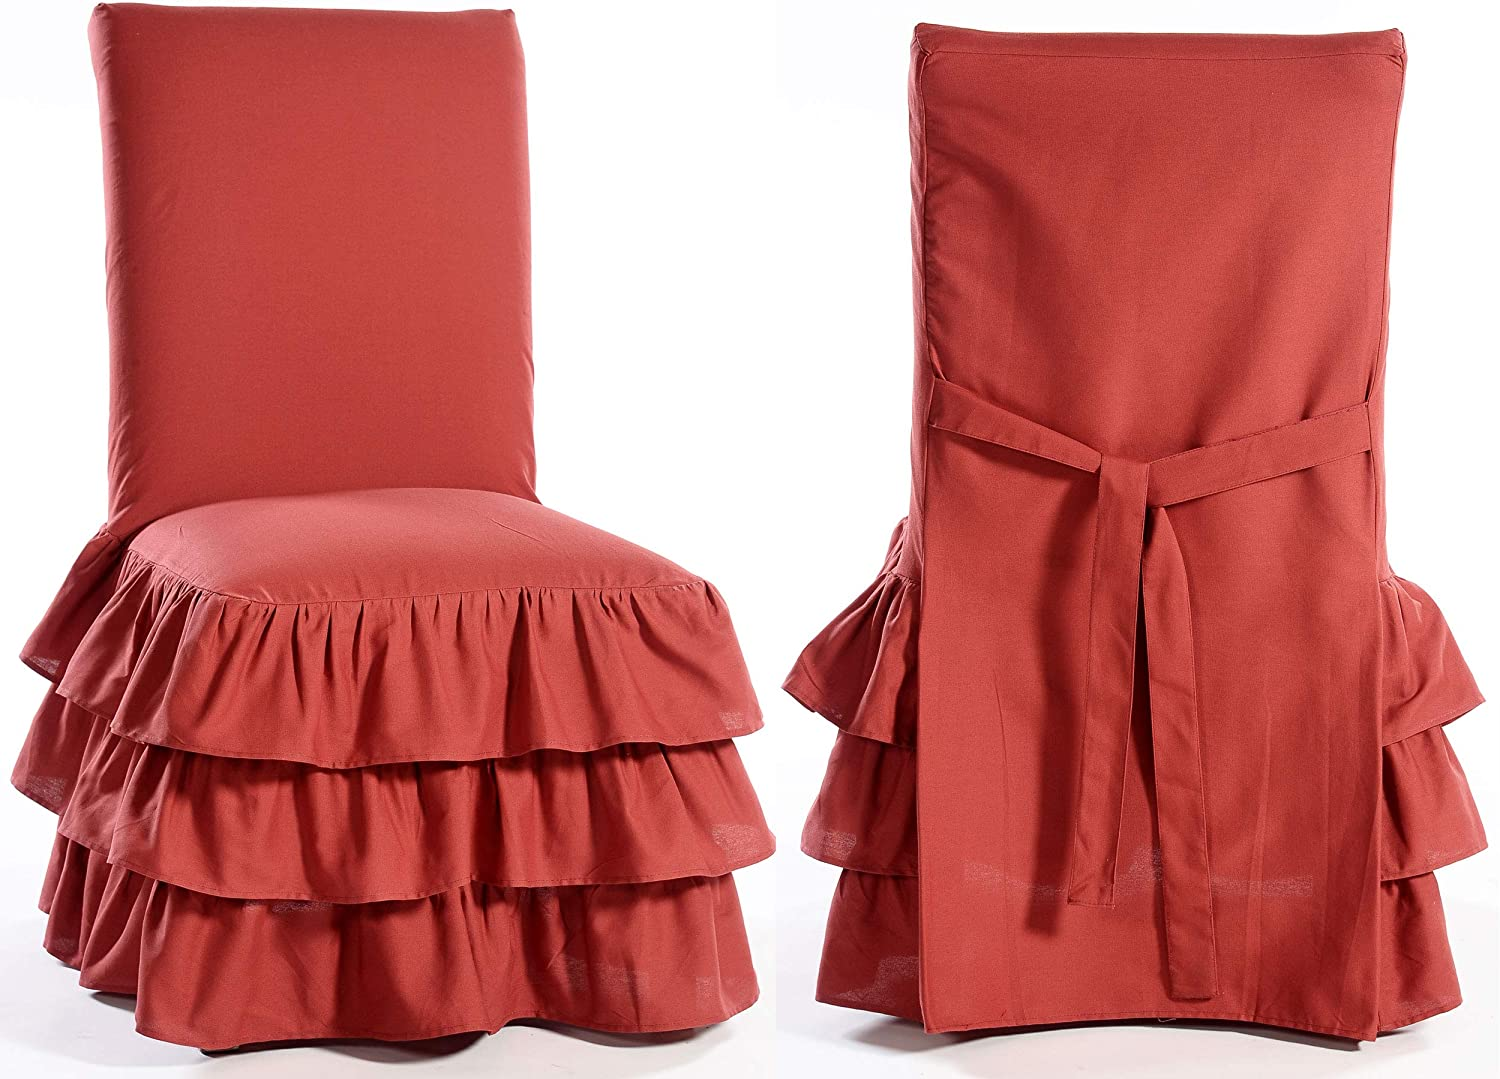 Classic Slipcovers CD3TIERRED Slipcover red Detroit Mall Reservation Dining Chair